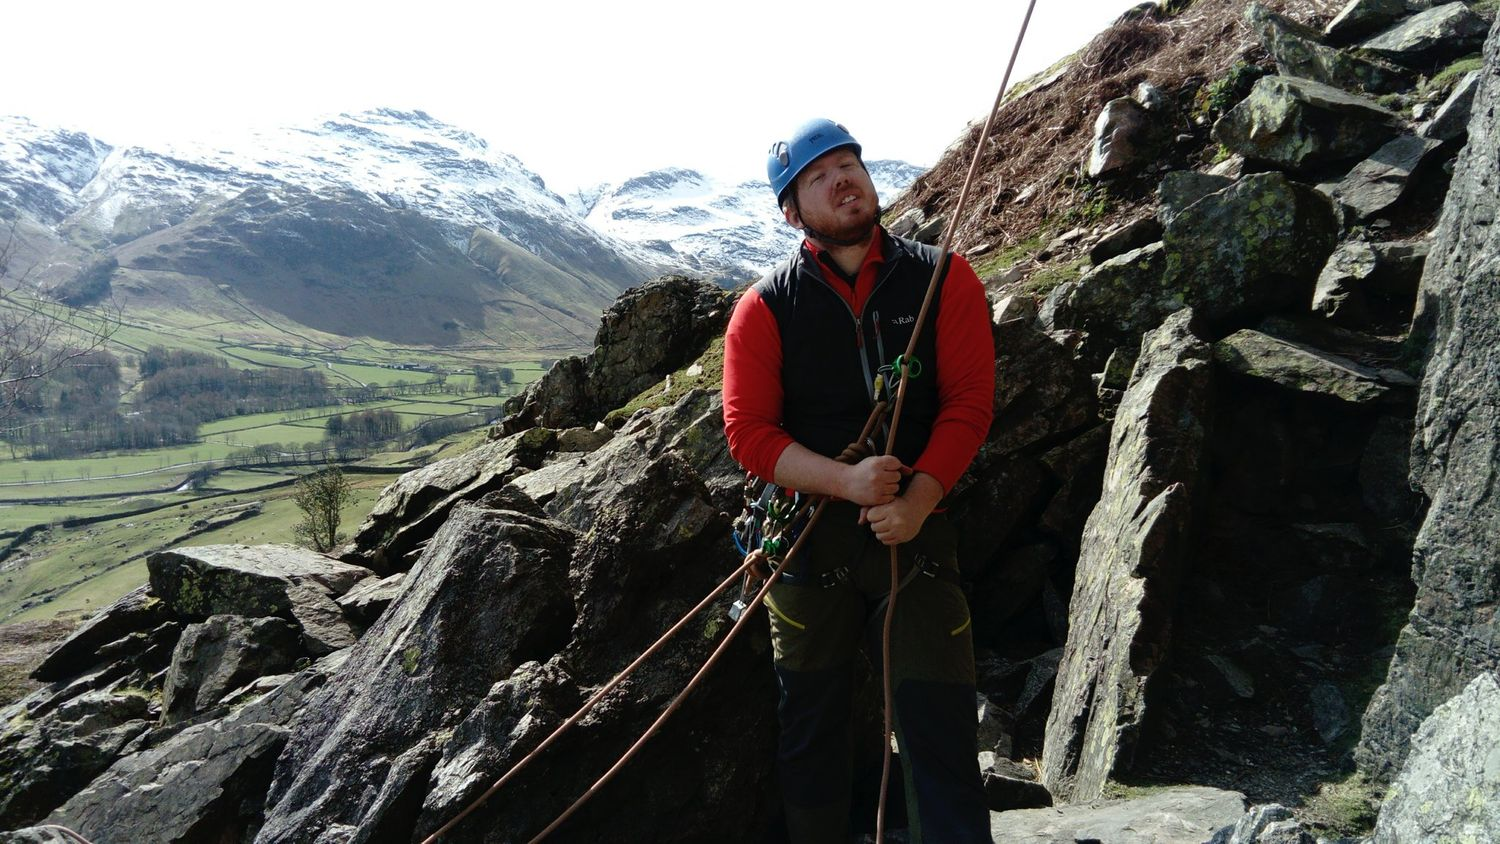 belaying at the bottom of a crag - chris ensoll mountain guide